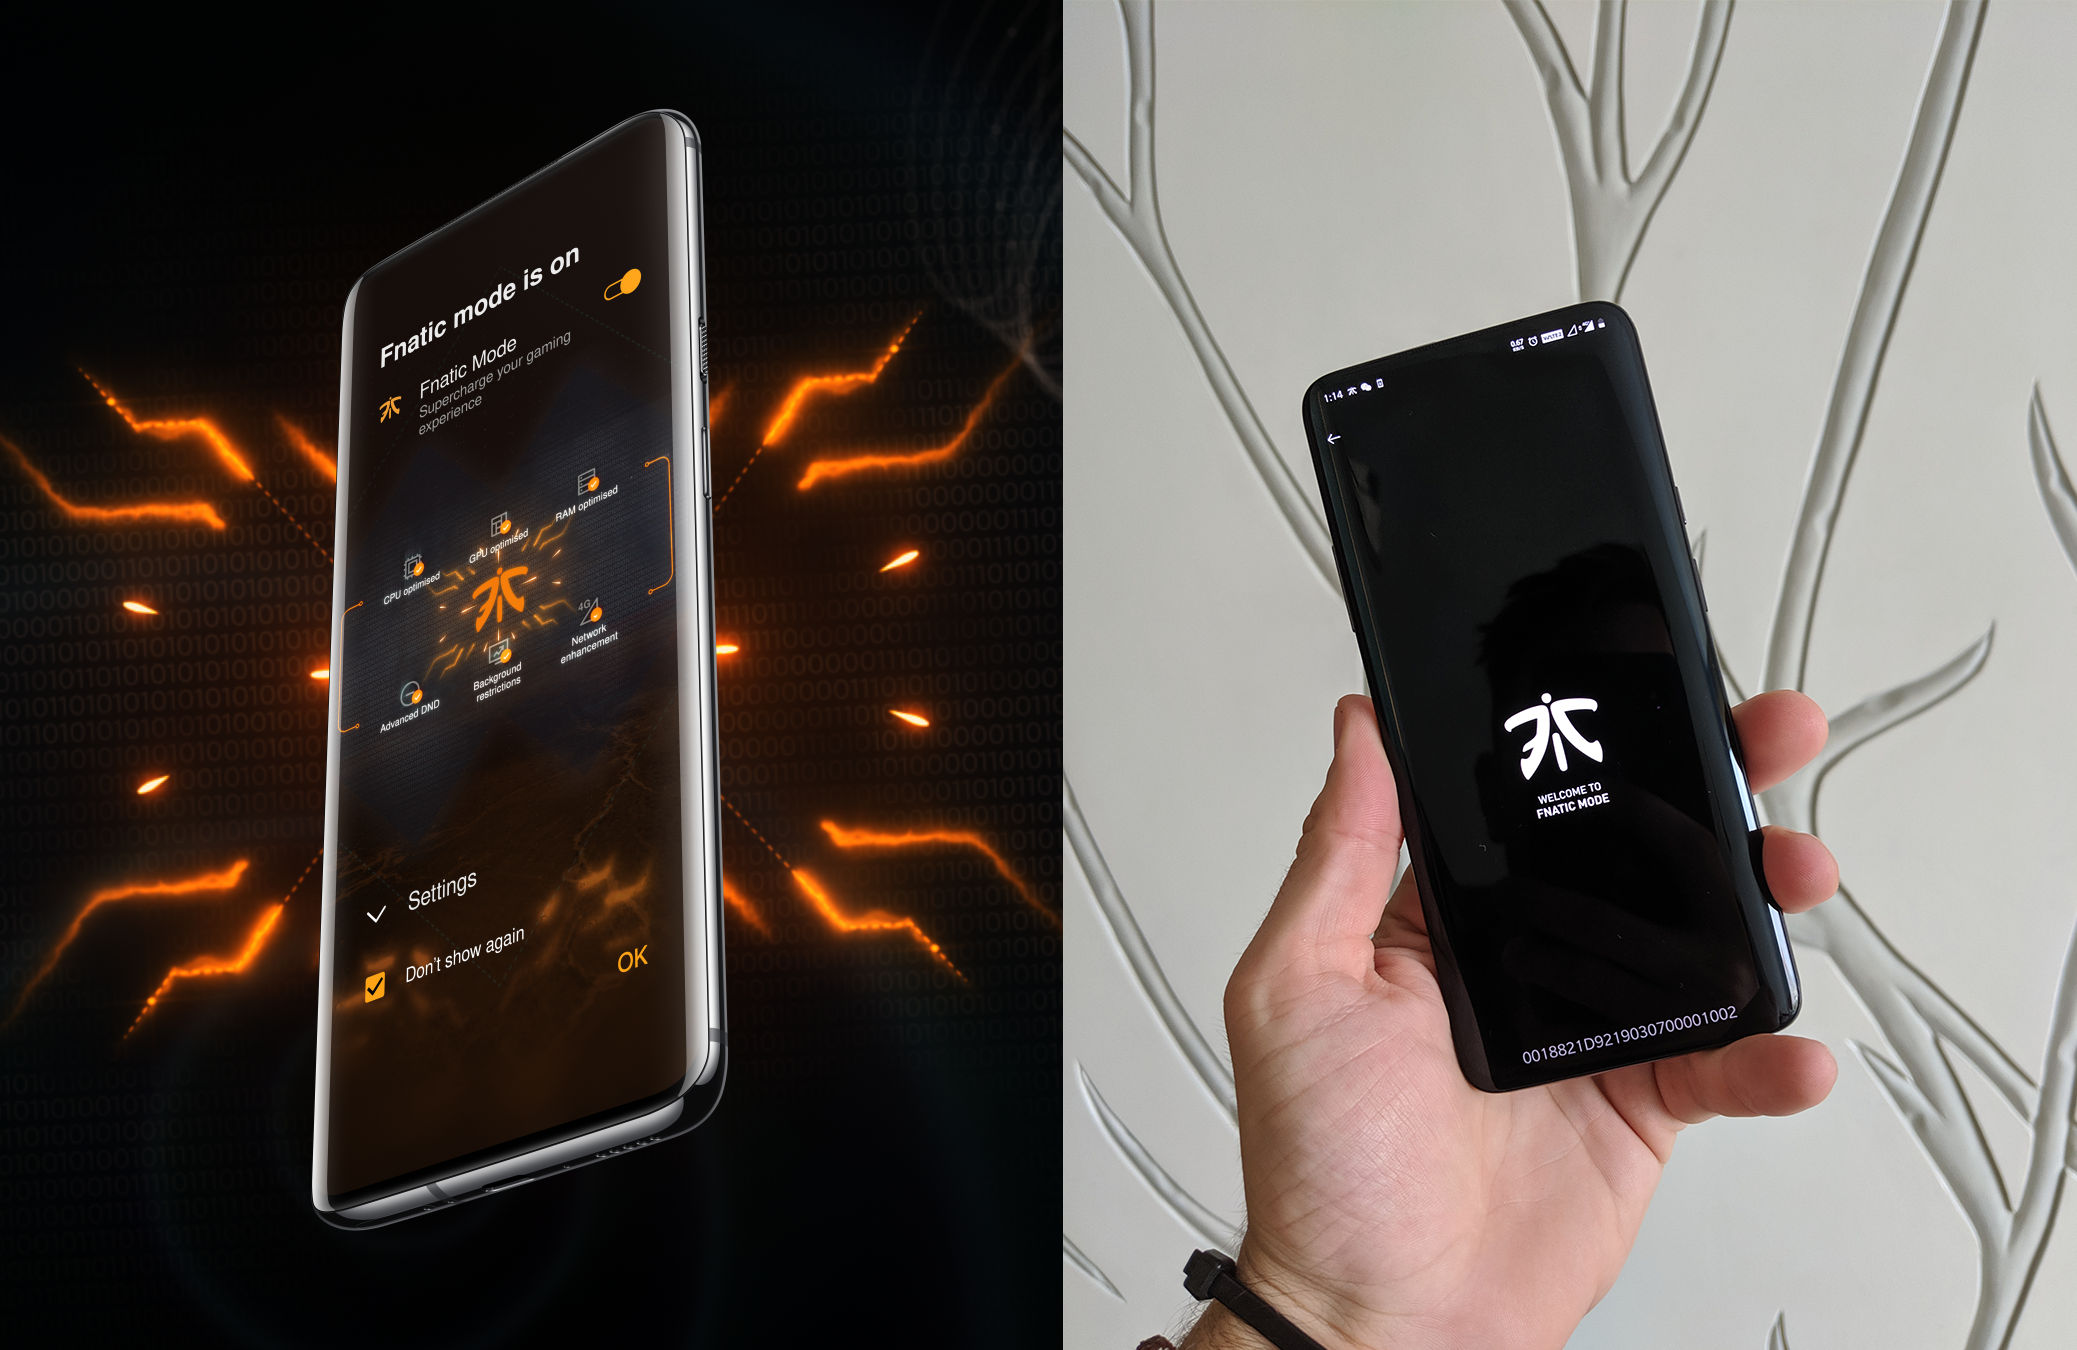 Announcing the OnePlus 7 Pro's Fnatic Mode - Fnatic